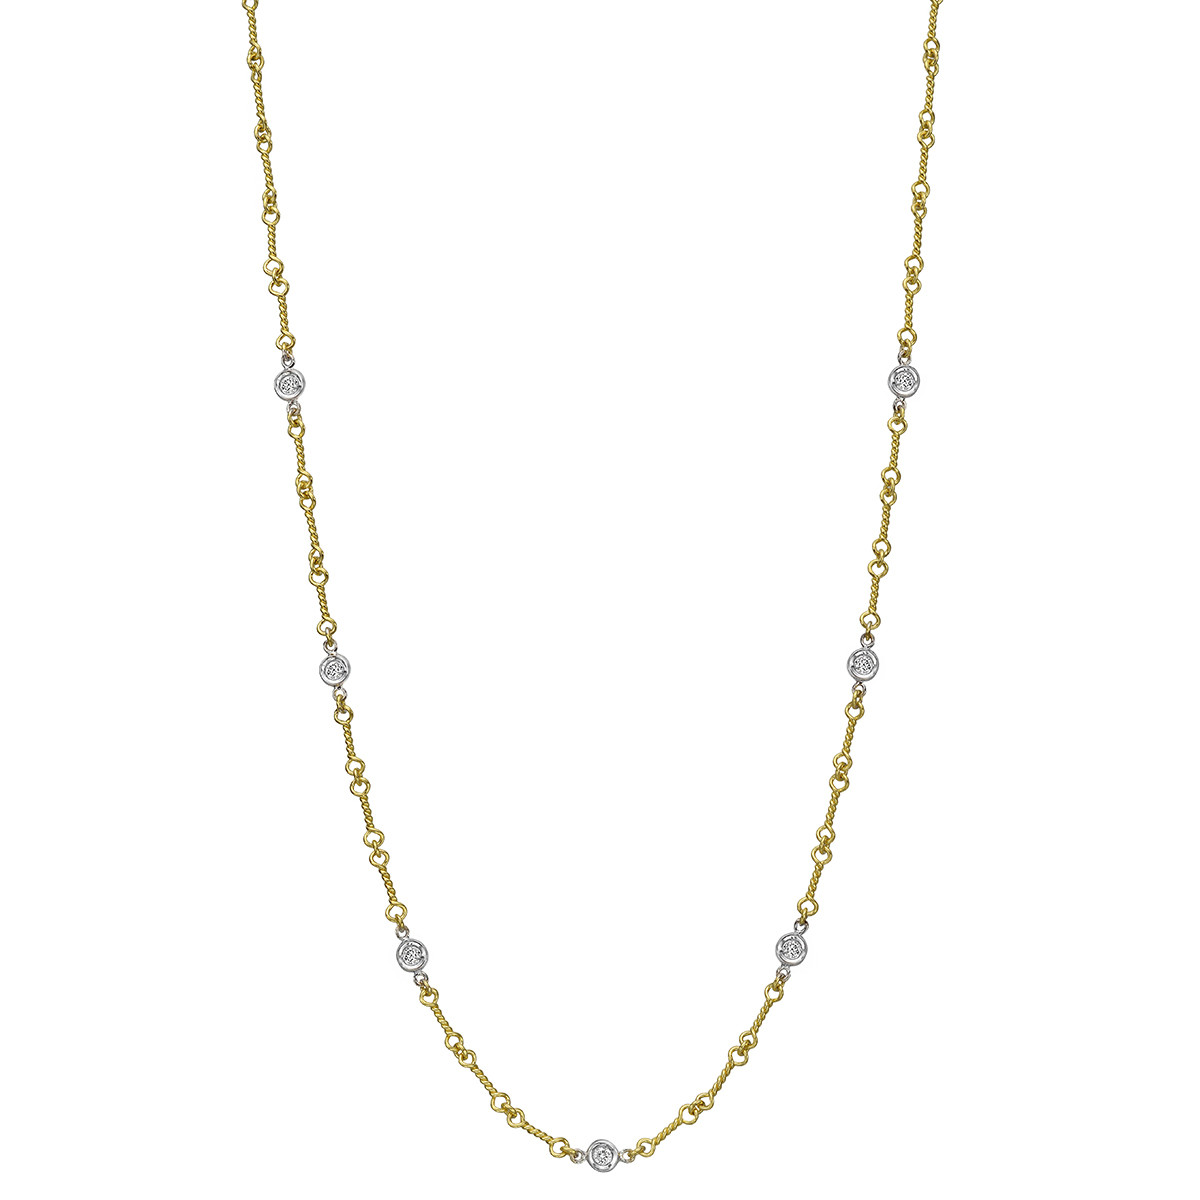 18k Gold & Diamond Twisted Chain Necklace